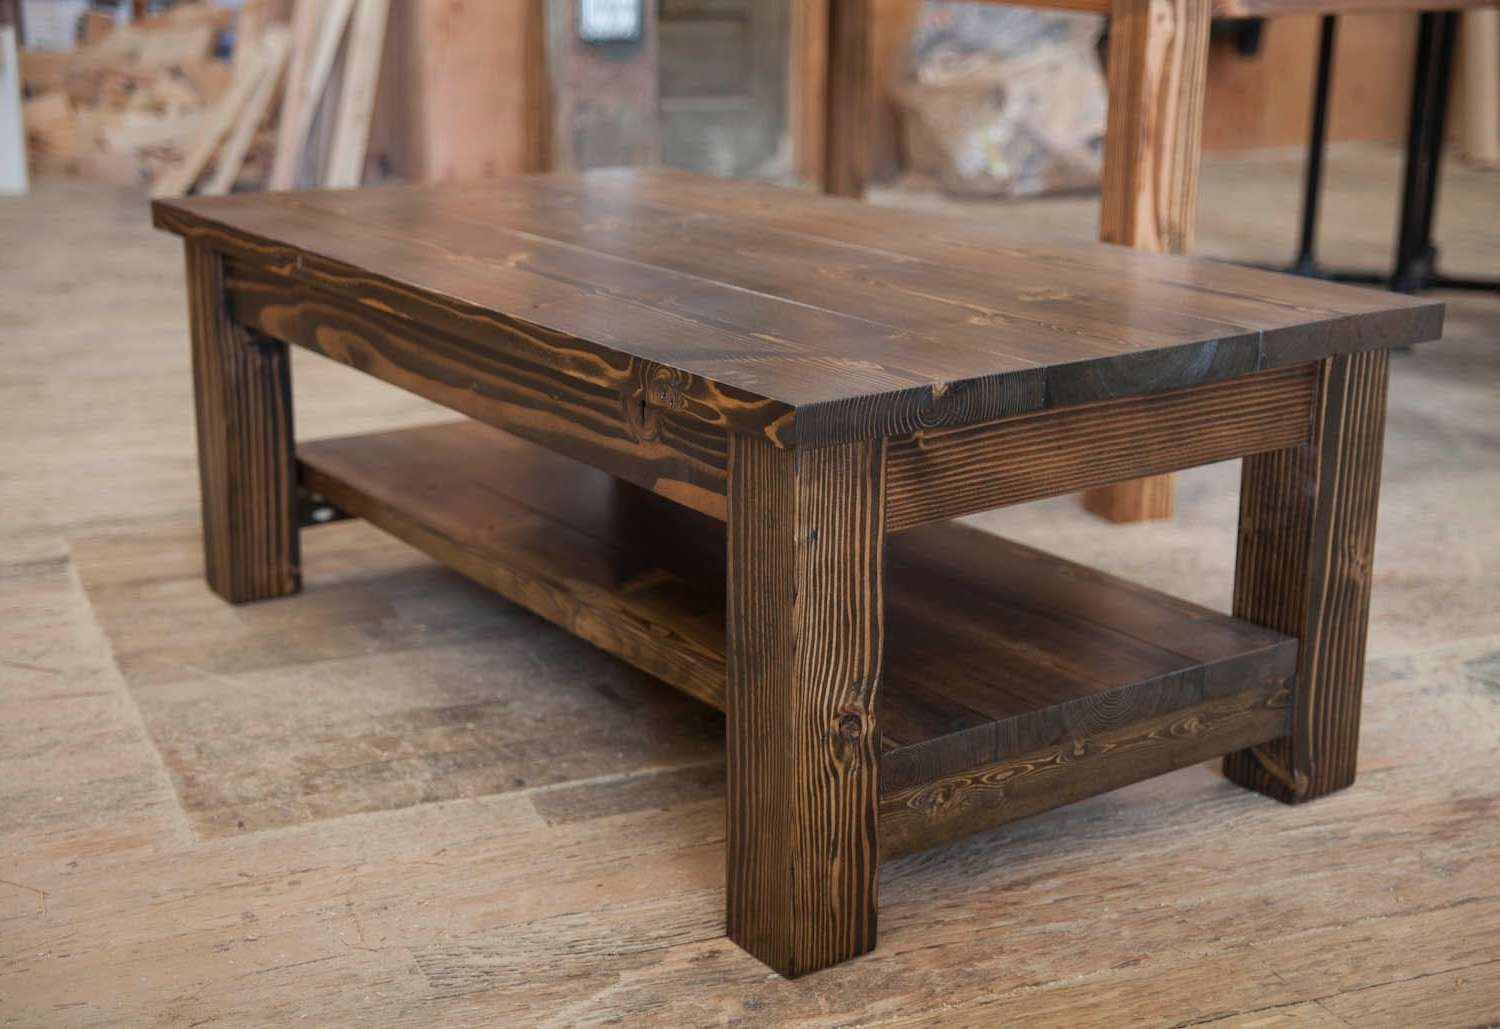 Farmhouse Coffee Table Rustic Coffee Table Solid Wood Pertaining To Popular Farmhouse Coffee Tables (View 4 of 20)